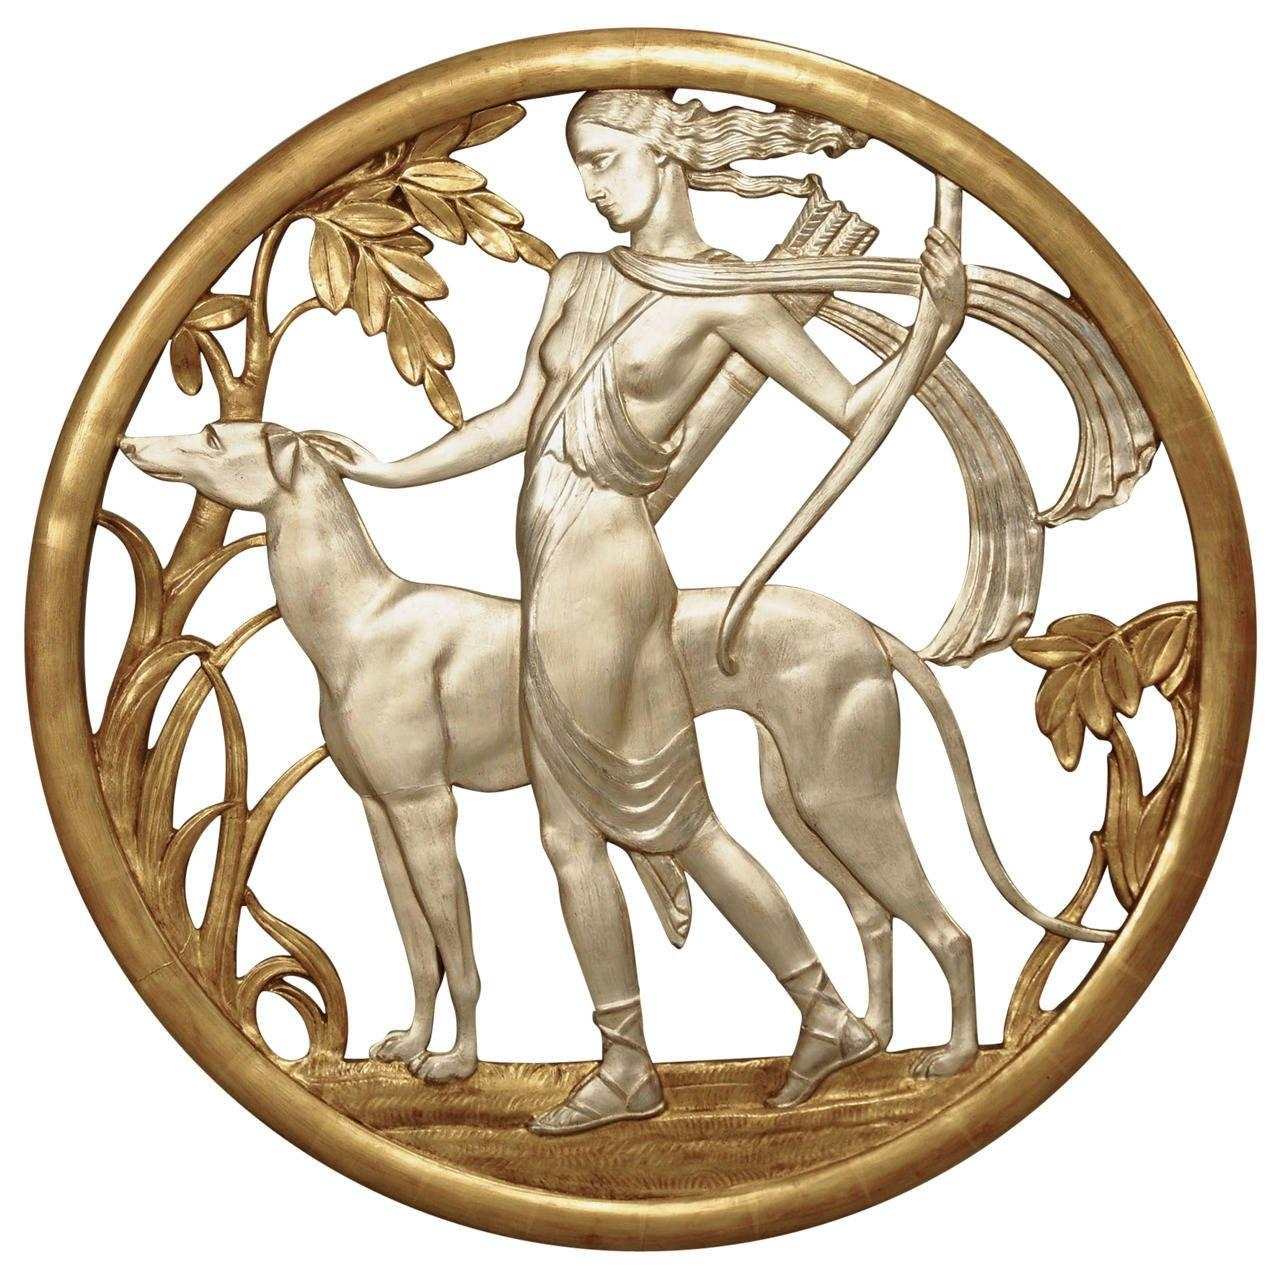 Super Rare Set Of 1930S Art Deco Sporting Metal Plaques At 1Stdibs Throughout Art Deco Metal Wall Art (View 5 of 20)